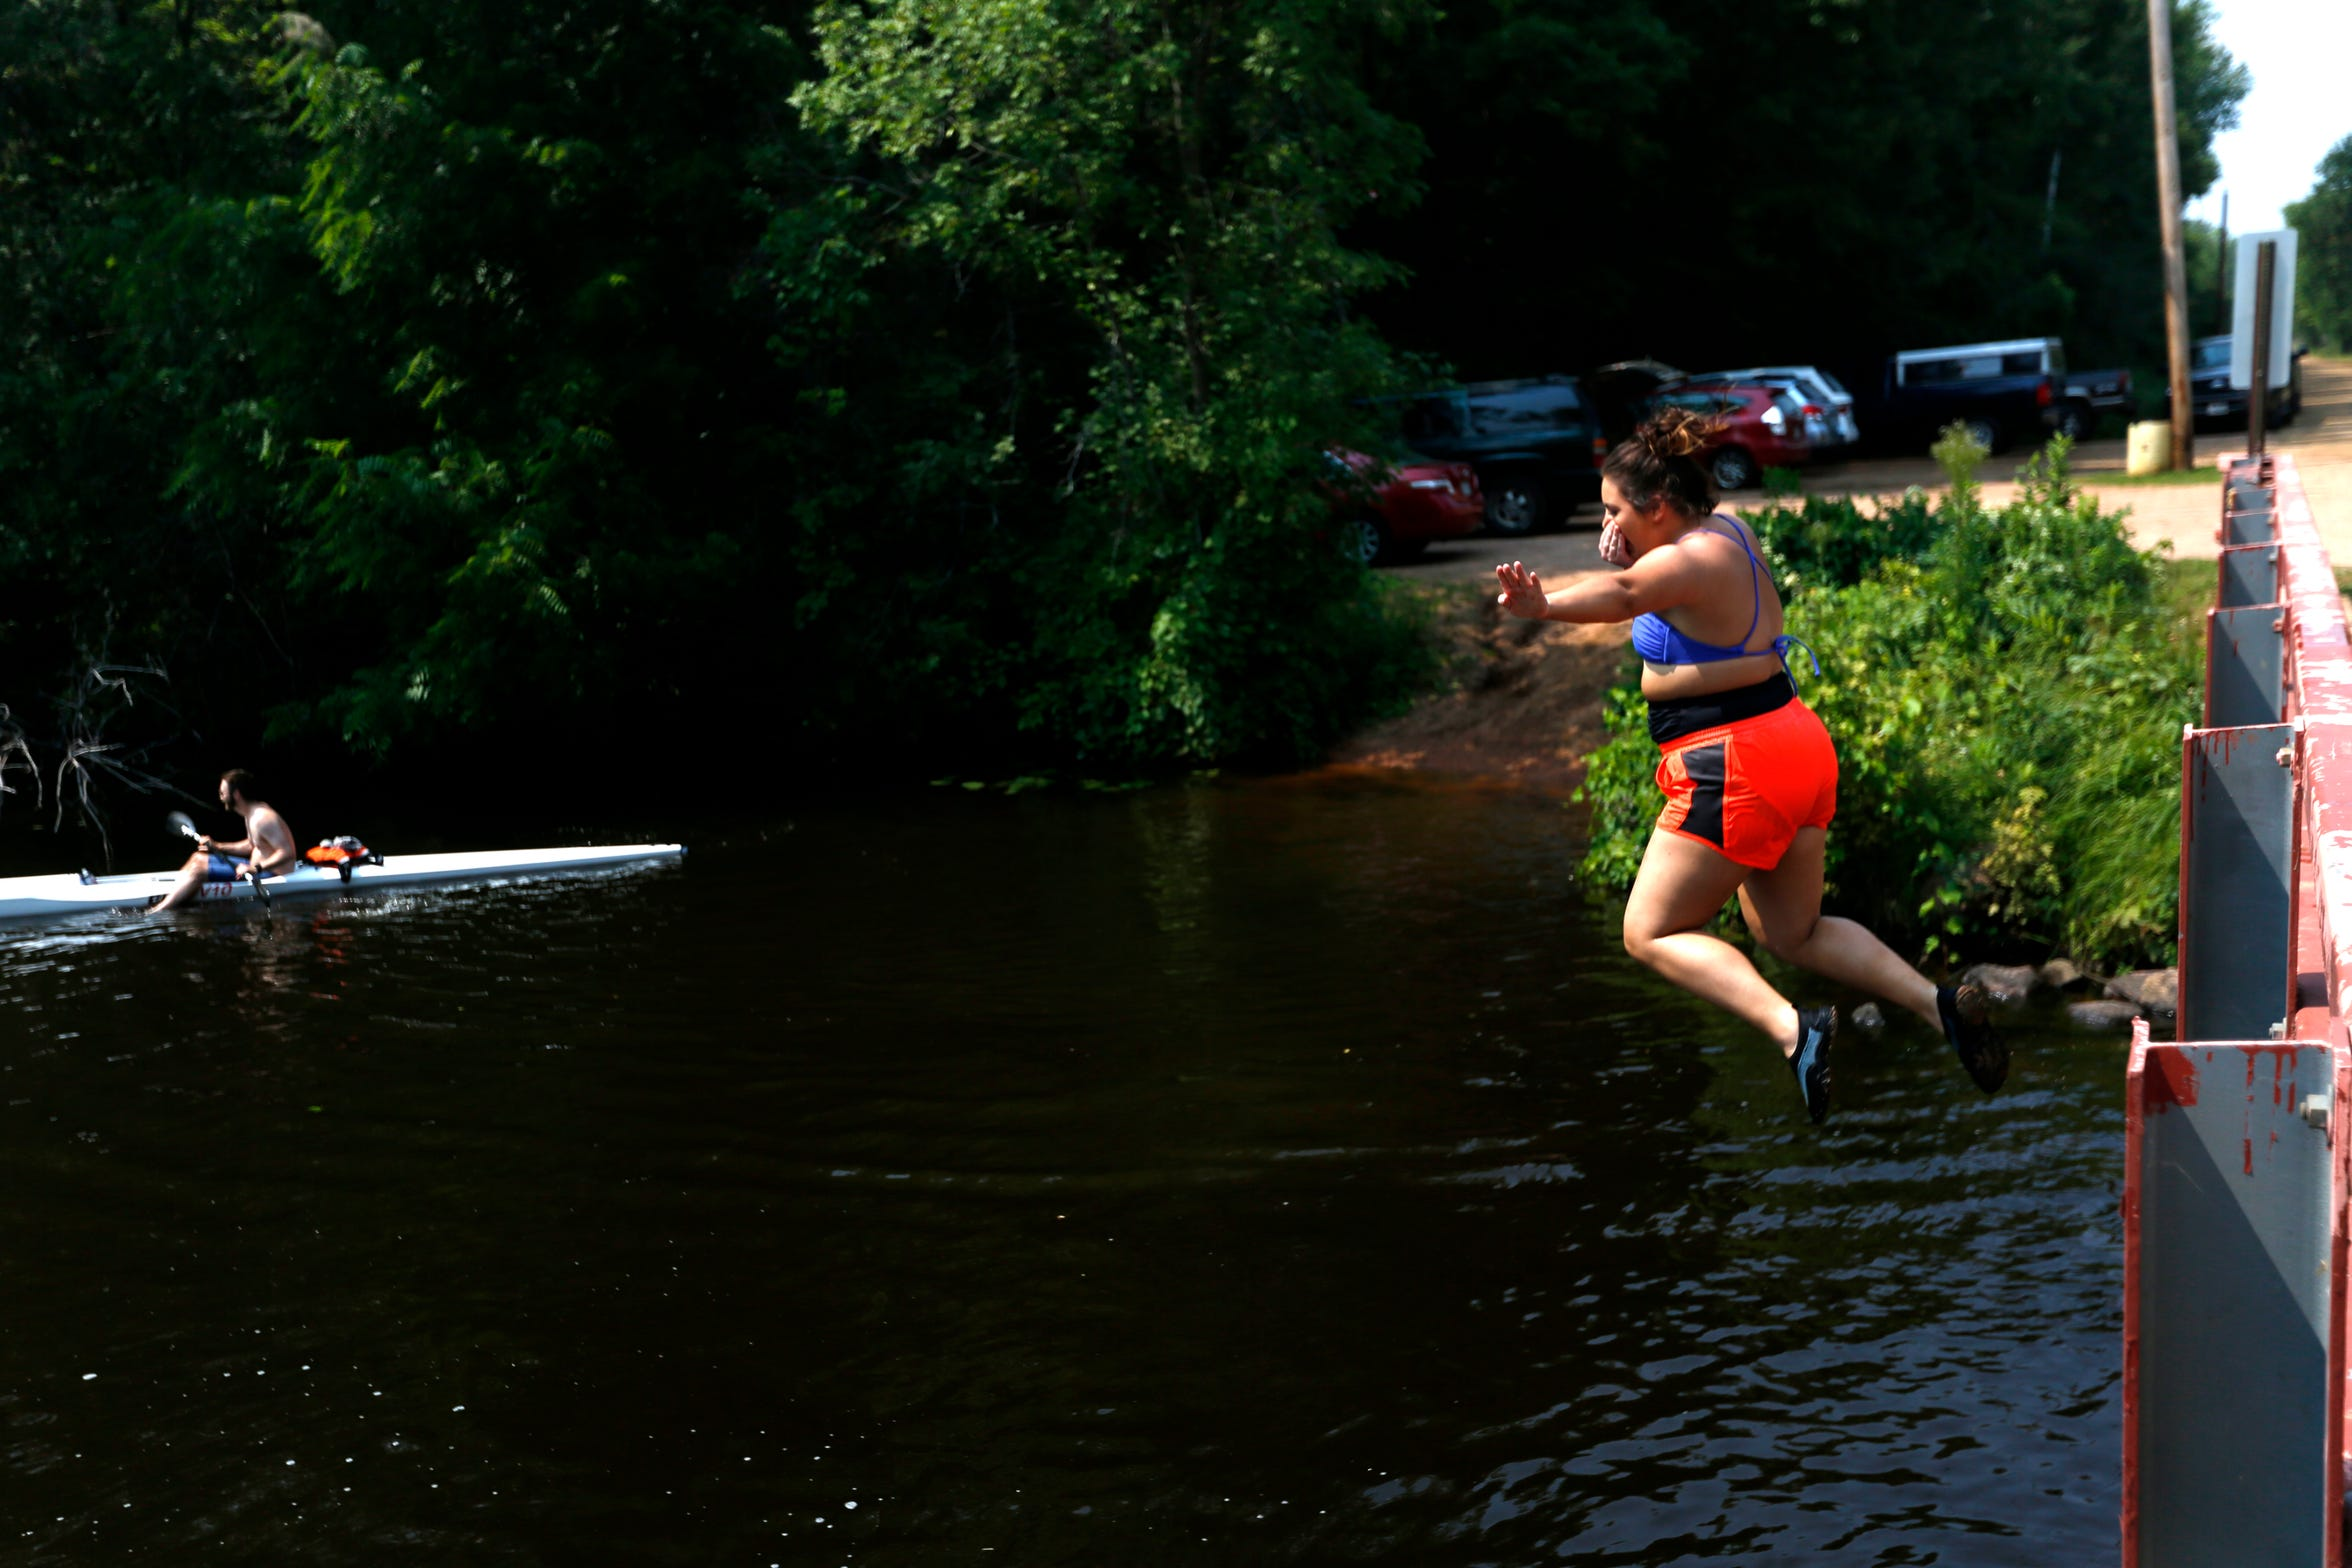 A quester jumps into the river to complete a challenge during PaddleQuest Odyssey in Stevens Point, Wis., August 11, 2018.